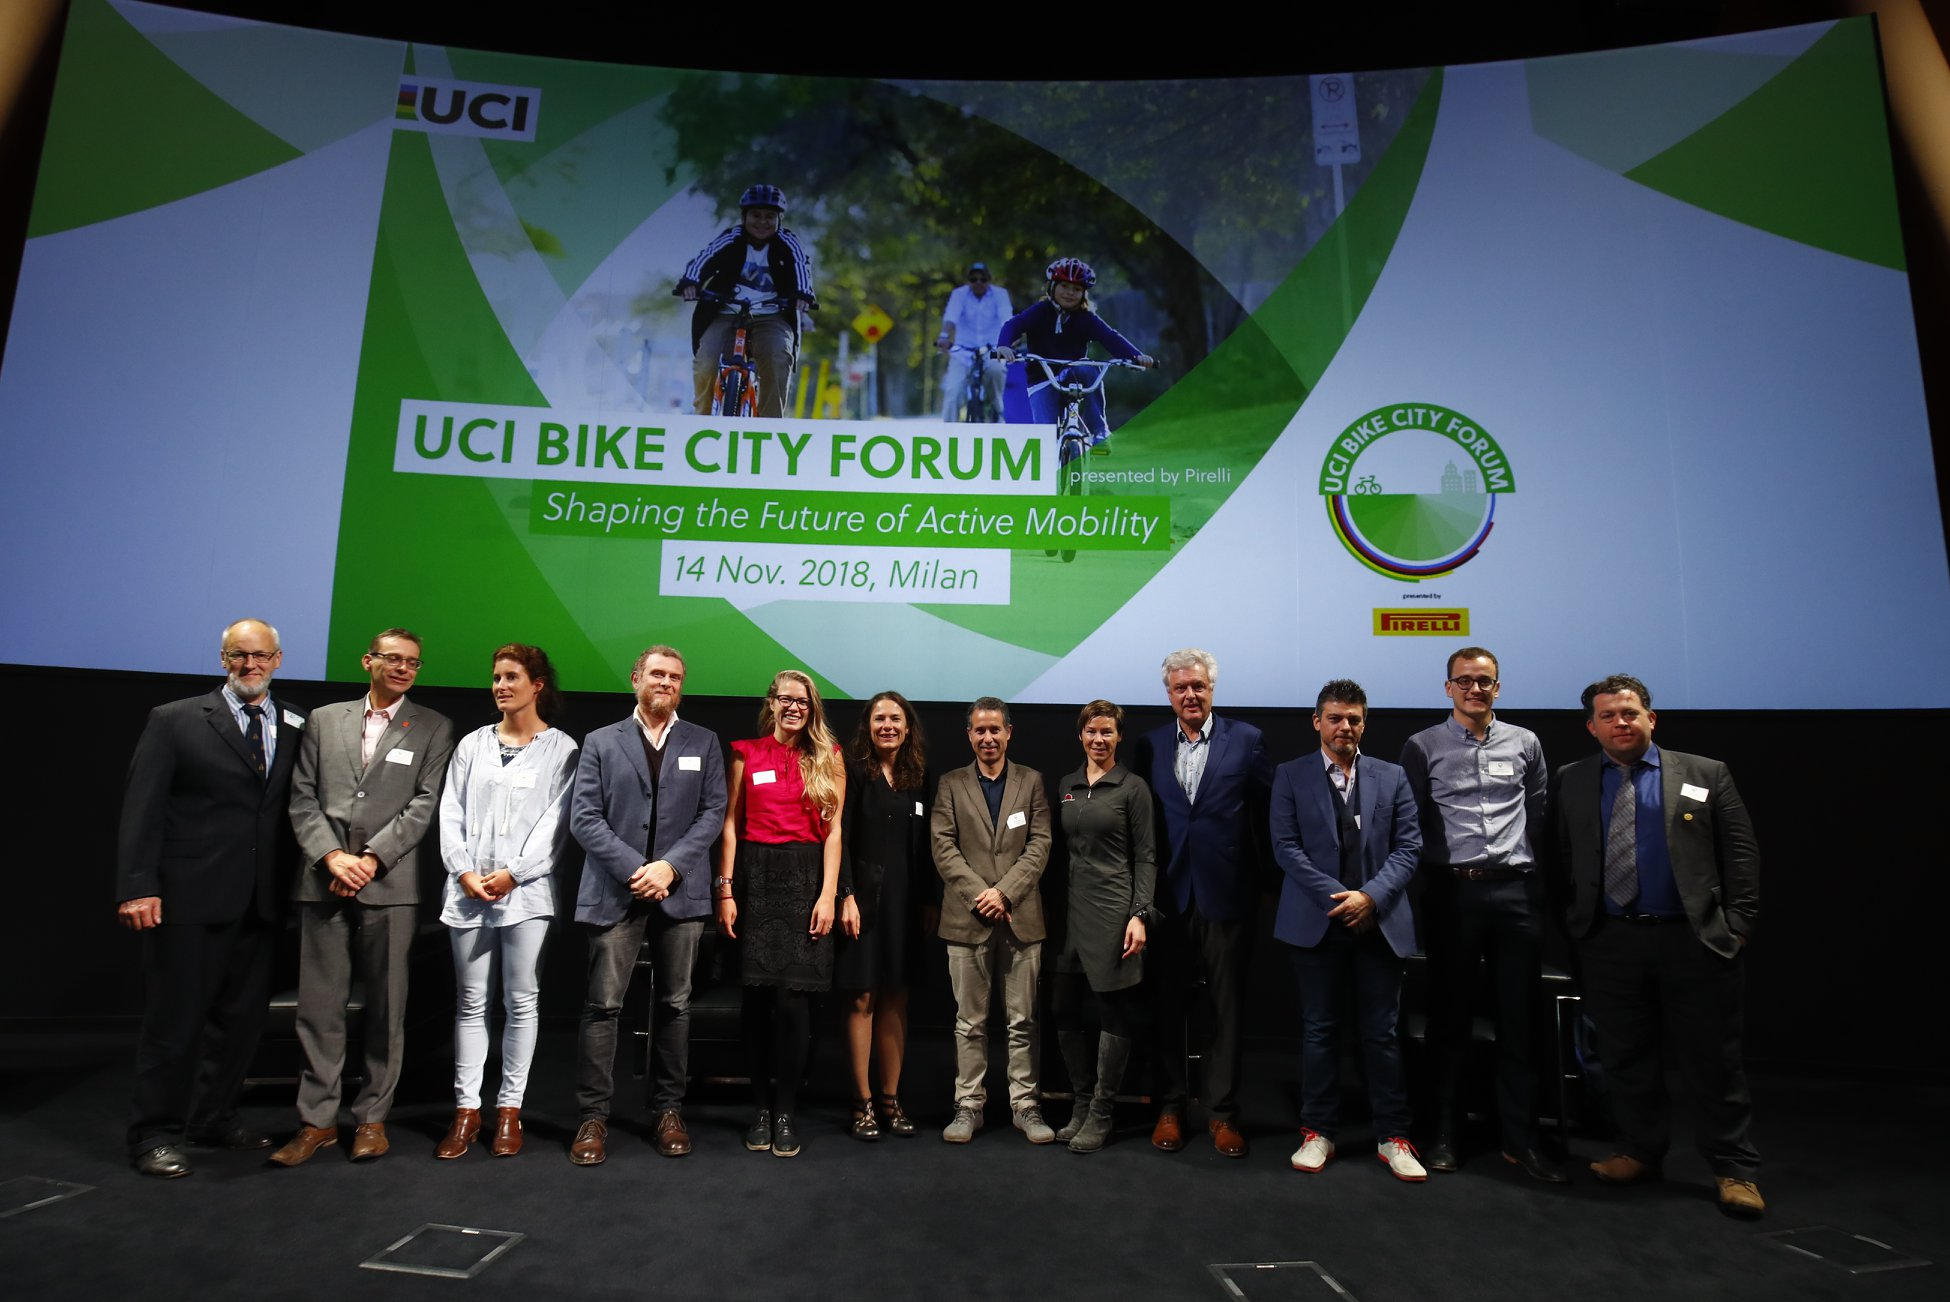 UCI Bike City Forum